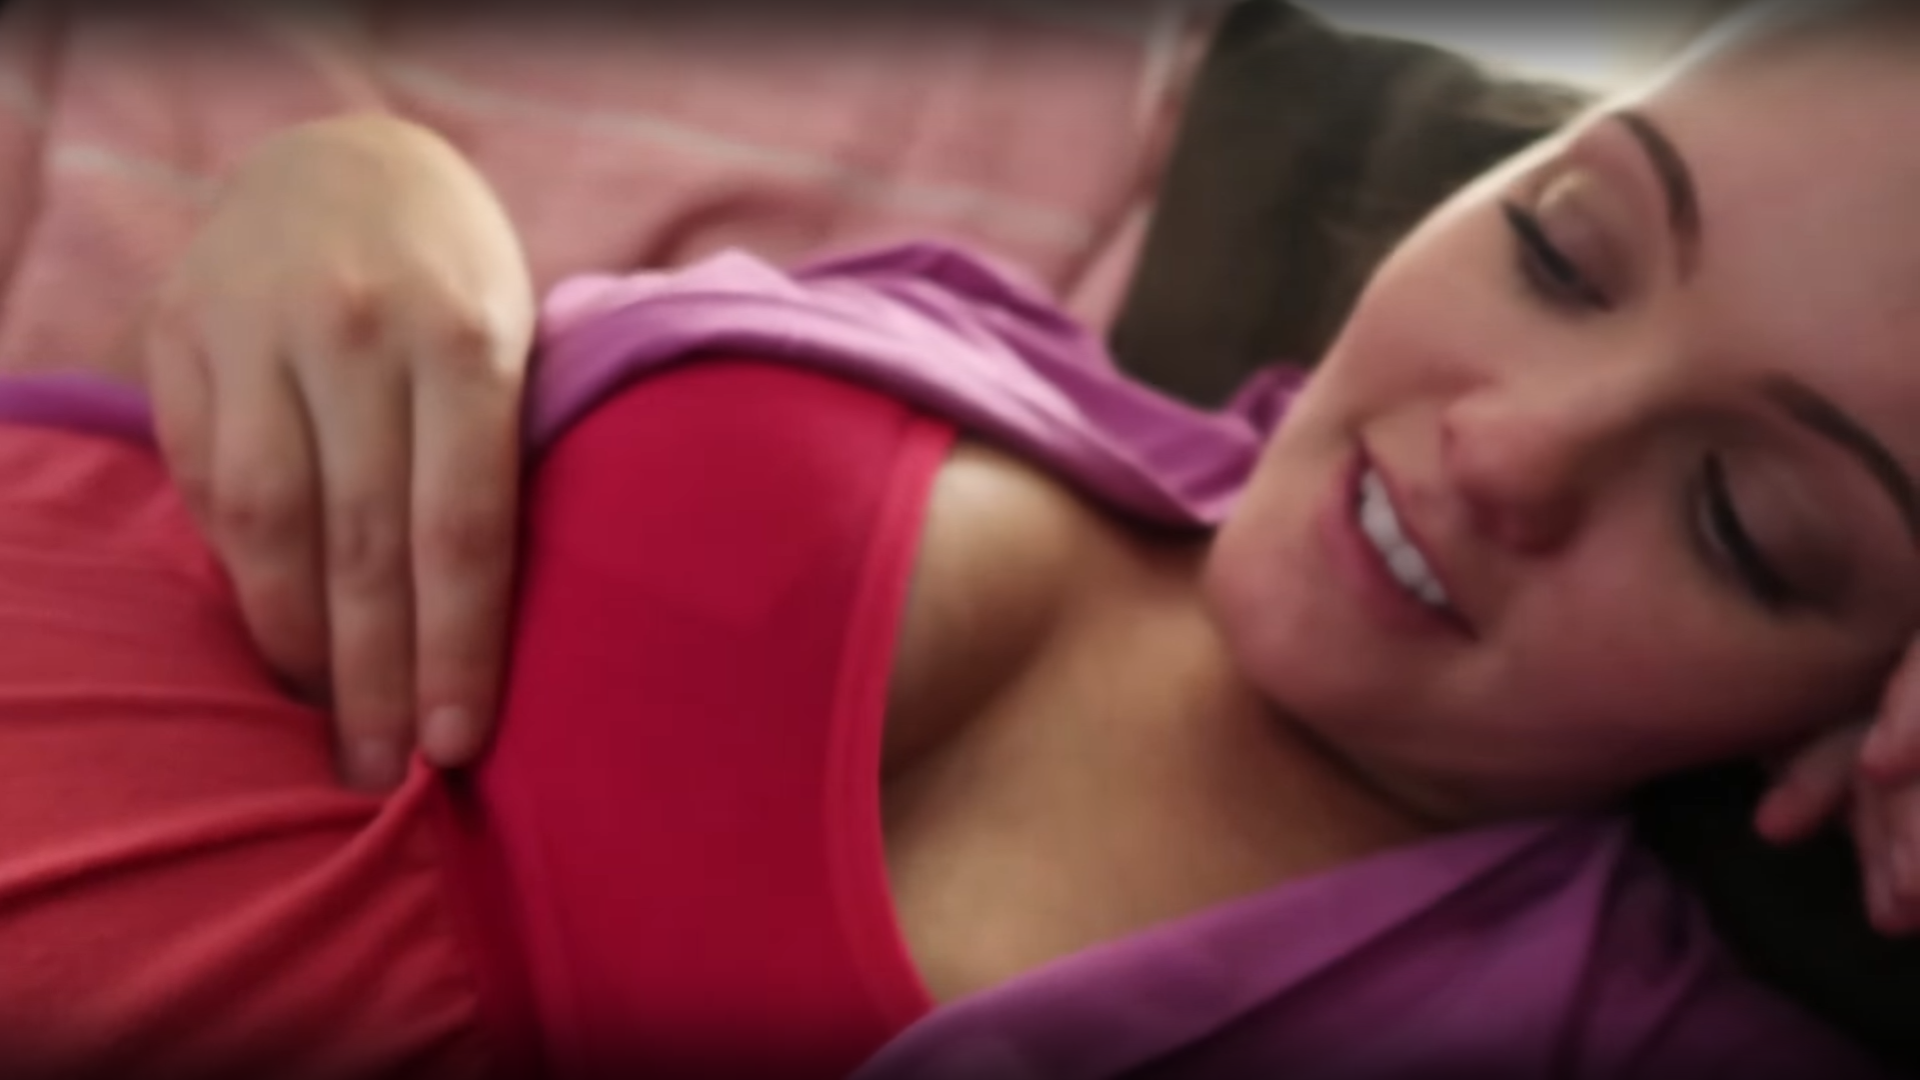 Stepsister sleeping and brother boobs pressing